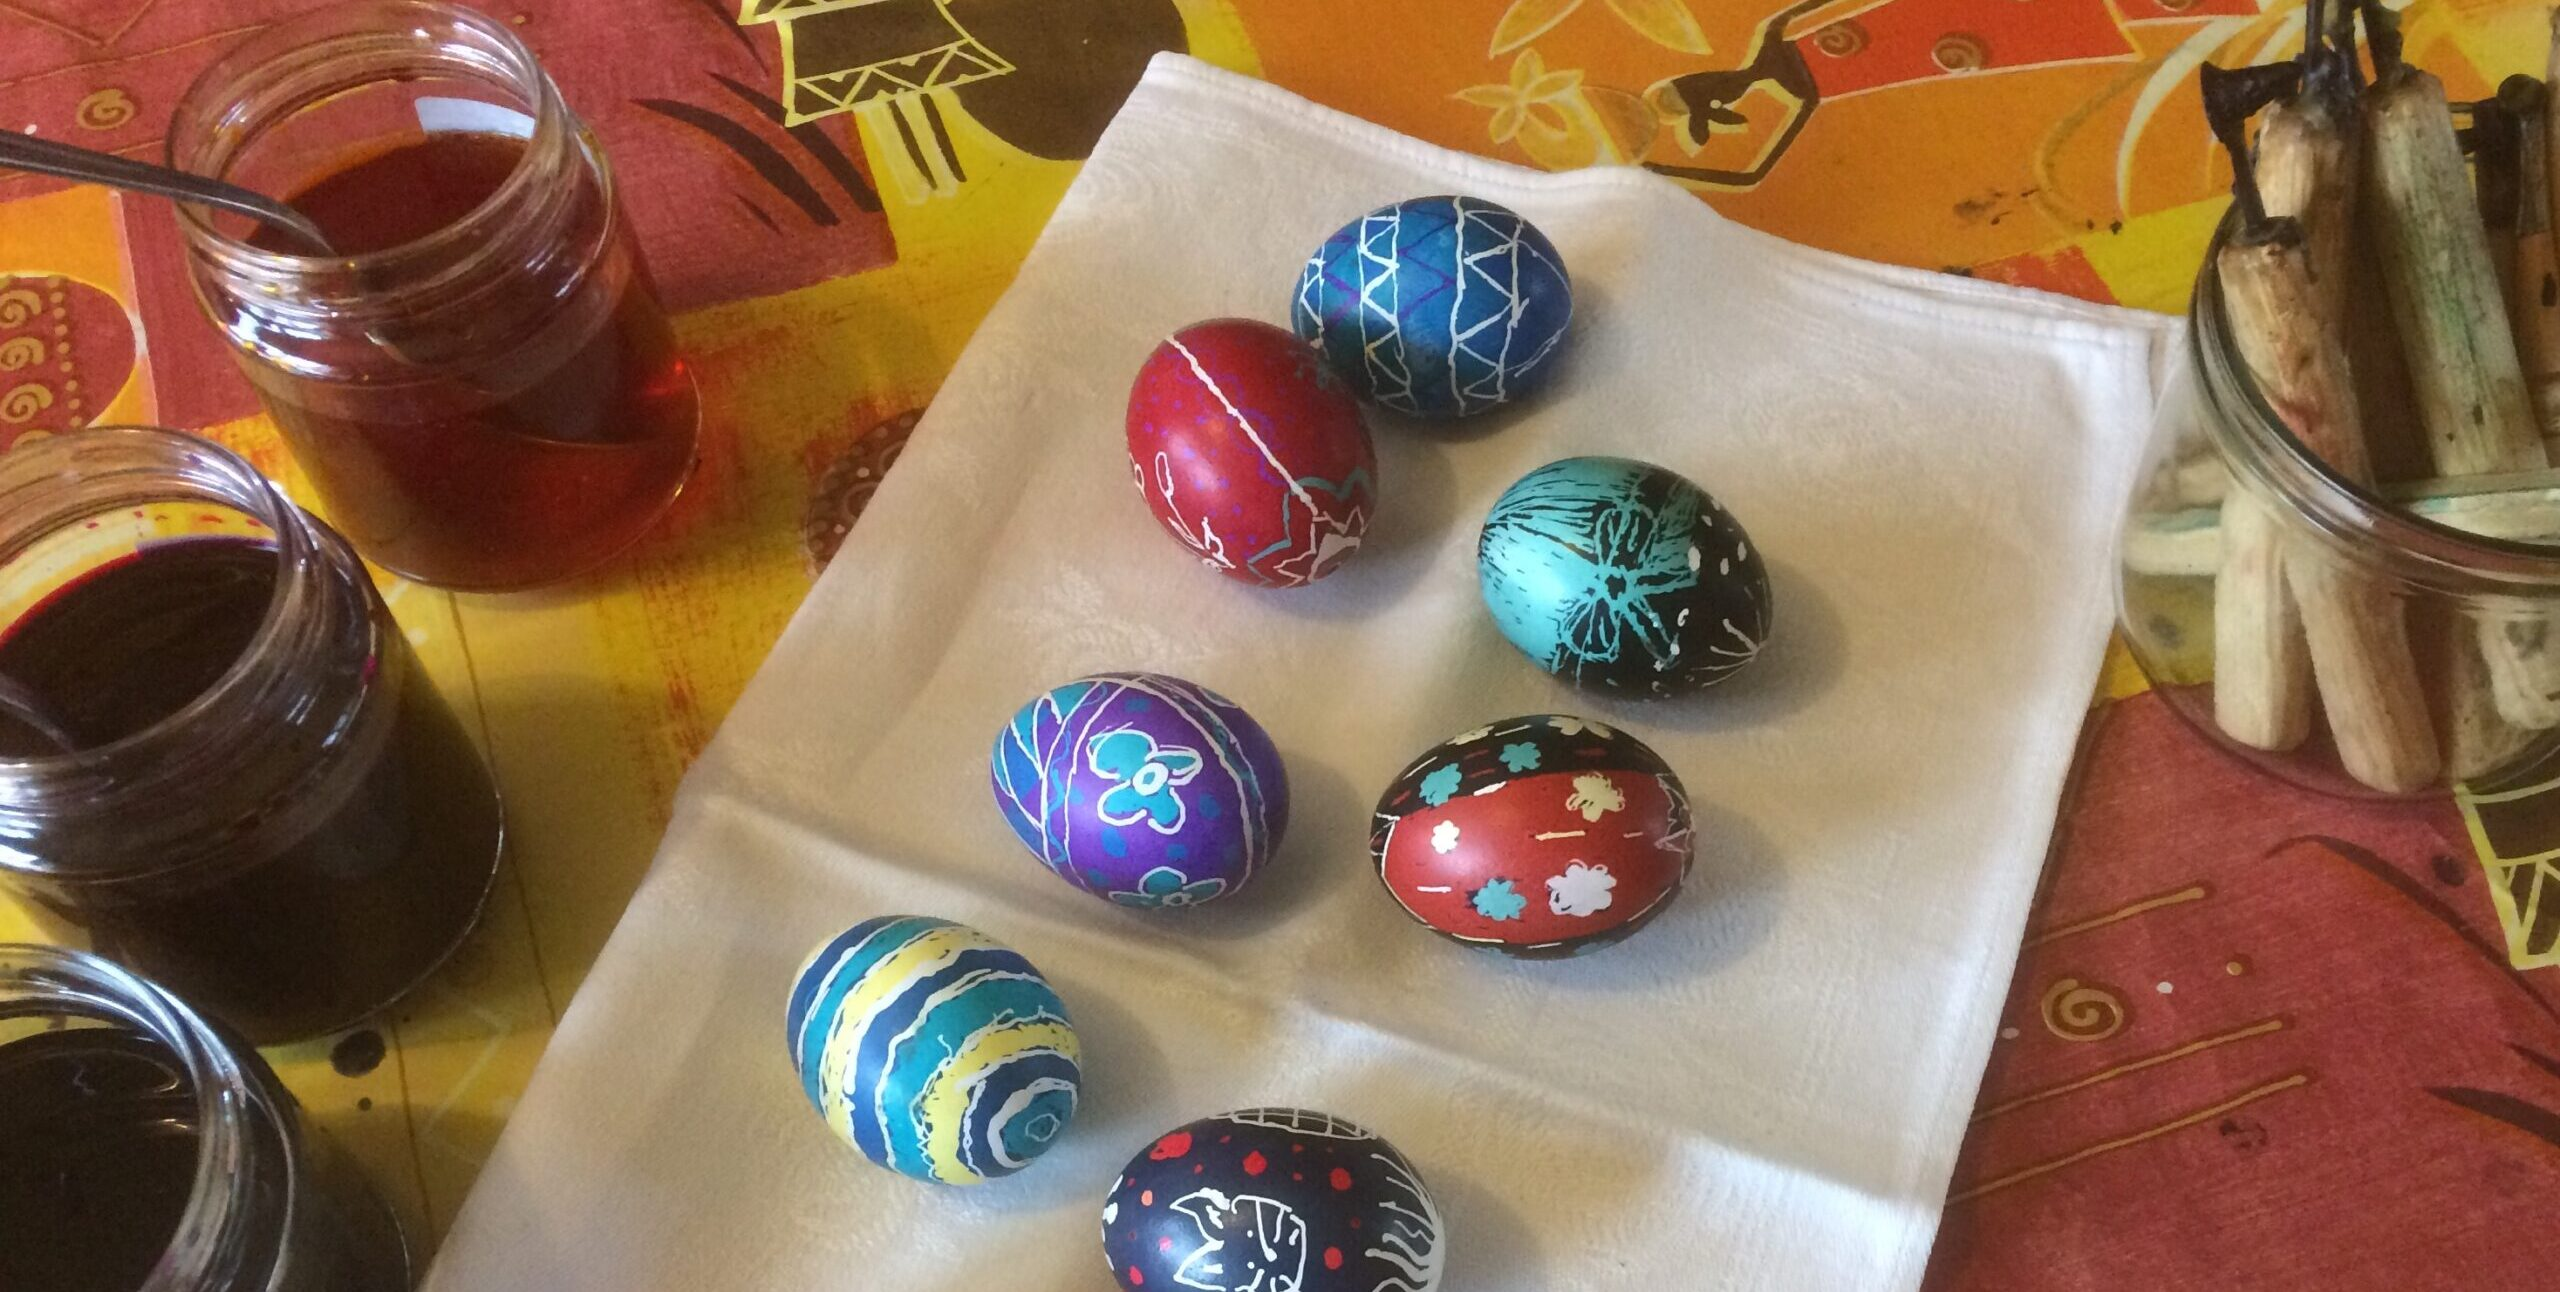 Finished pysanky eggs from workshop